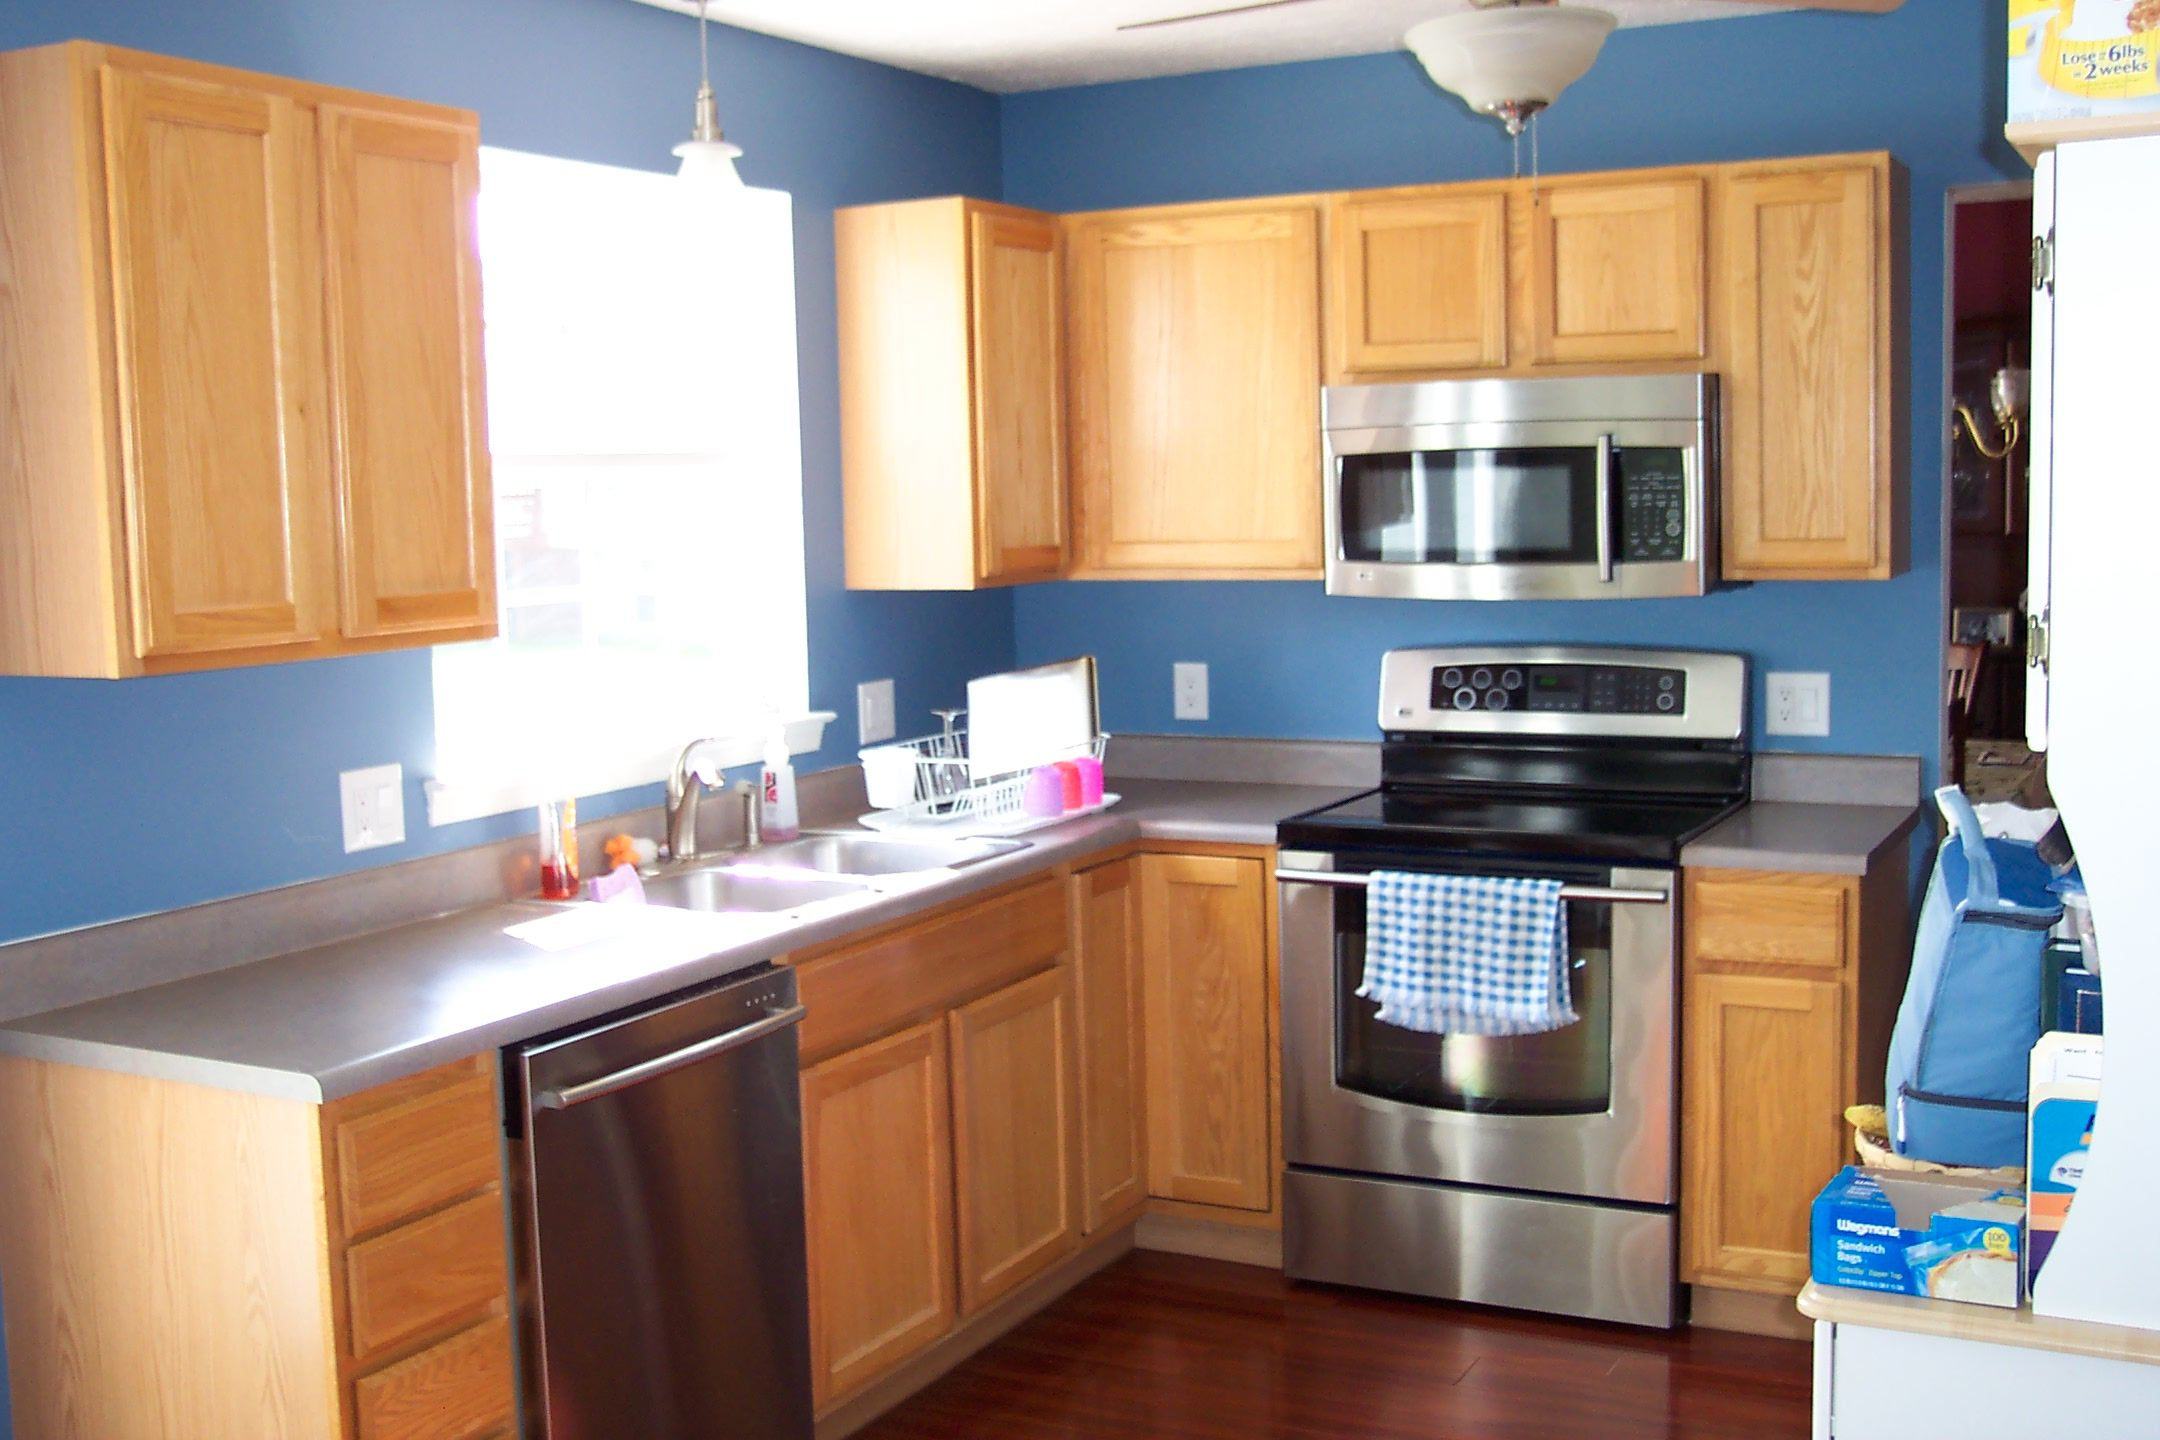 Kitchen paint colors with light wood cabinets - Kitchen Paint Colors With Light Wood Cabinets